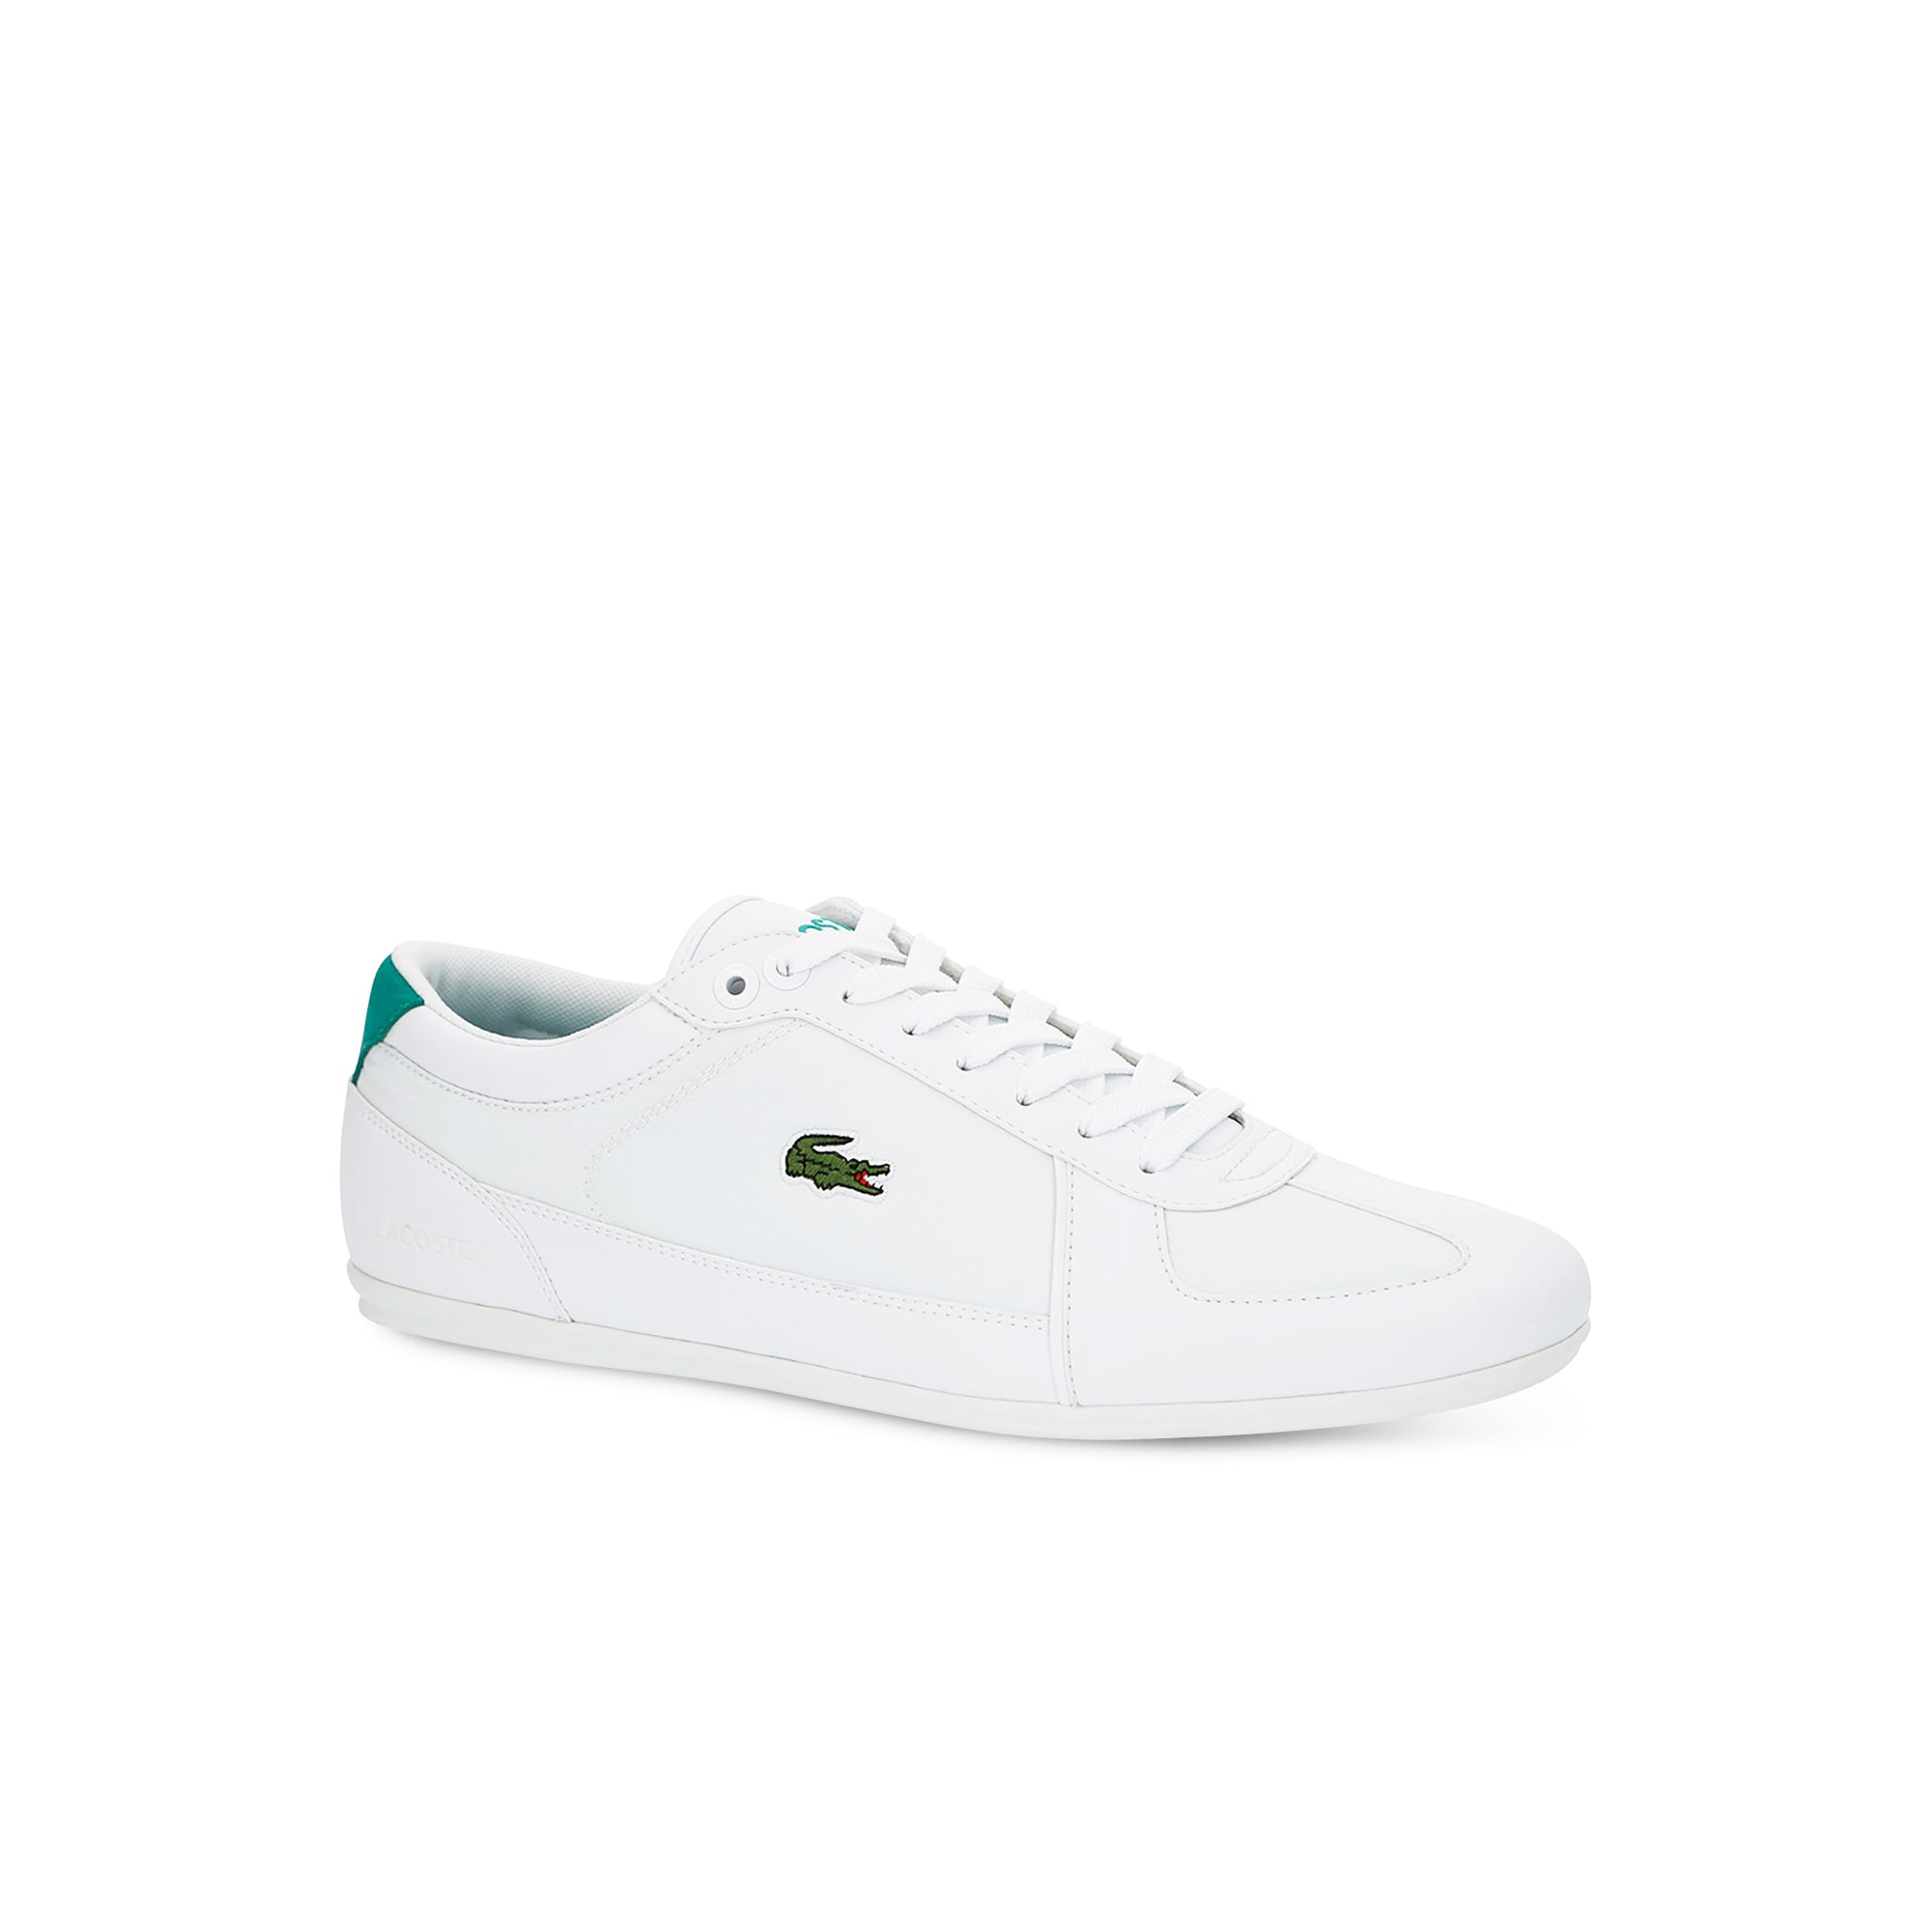 Men s Evara Sport Synthetic and Textile Sneakers 941ae4a602a